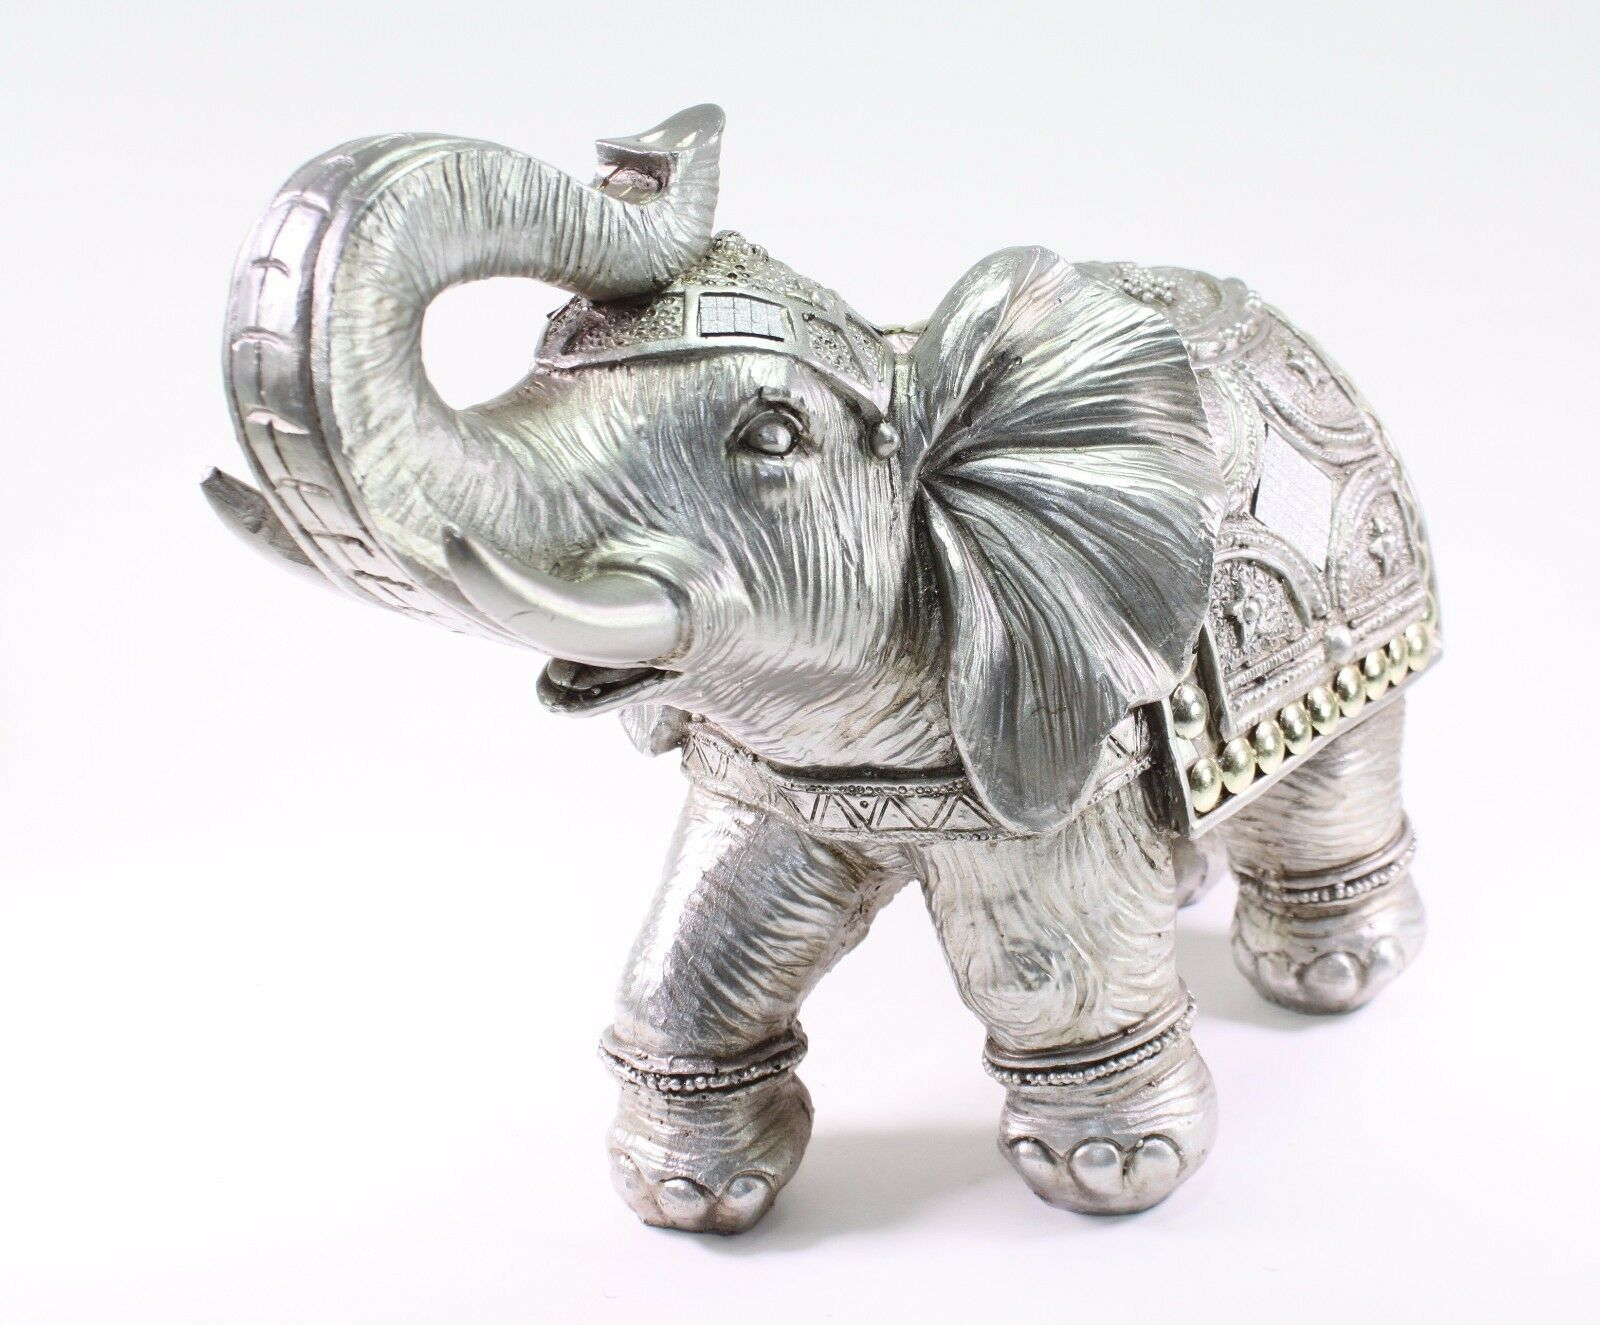 Feng shui 13 silver large elephant trunk statue lucky figurine gift home decor ebay Elephant home decor items